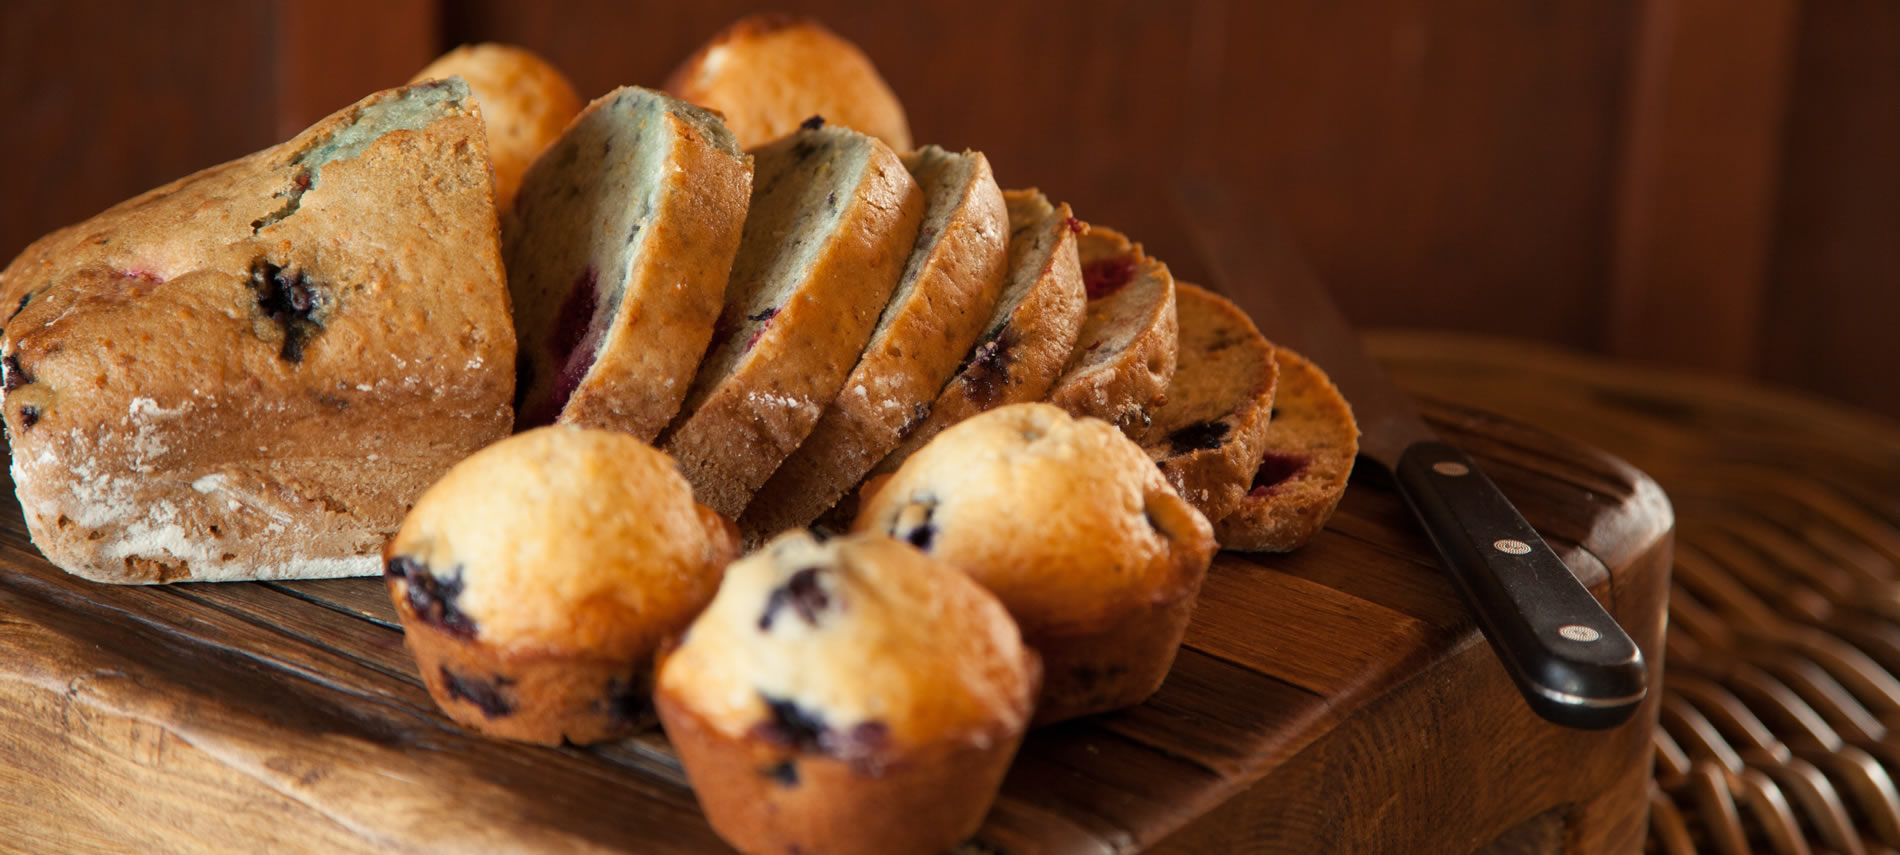 yummy mouth watering blueberry muffins and bread all sliced and ready to be eaten